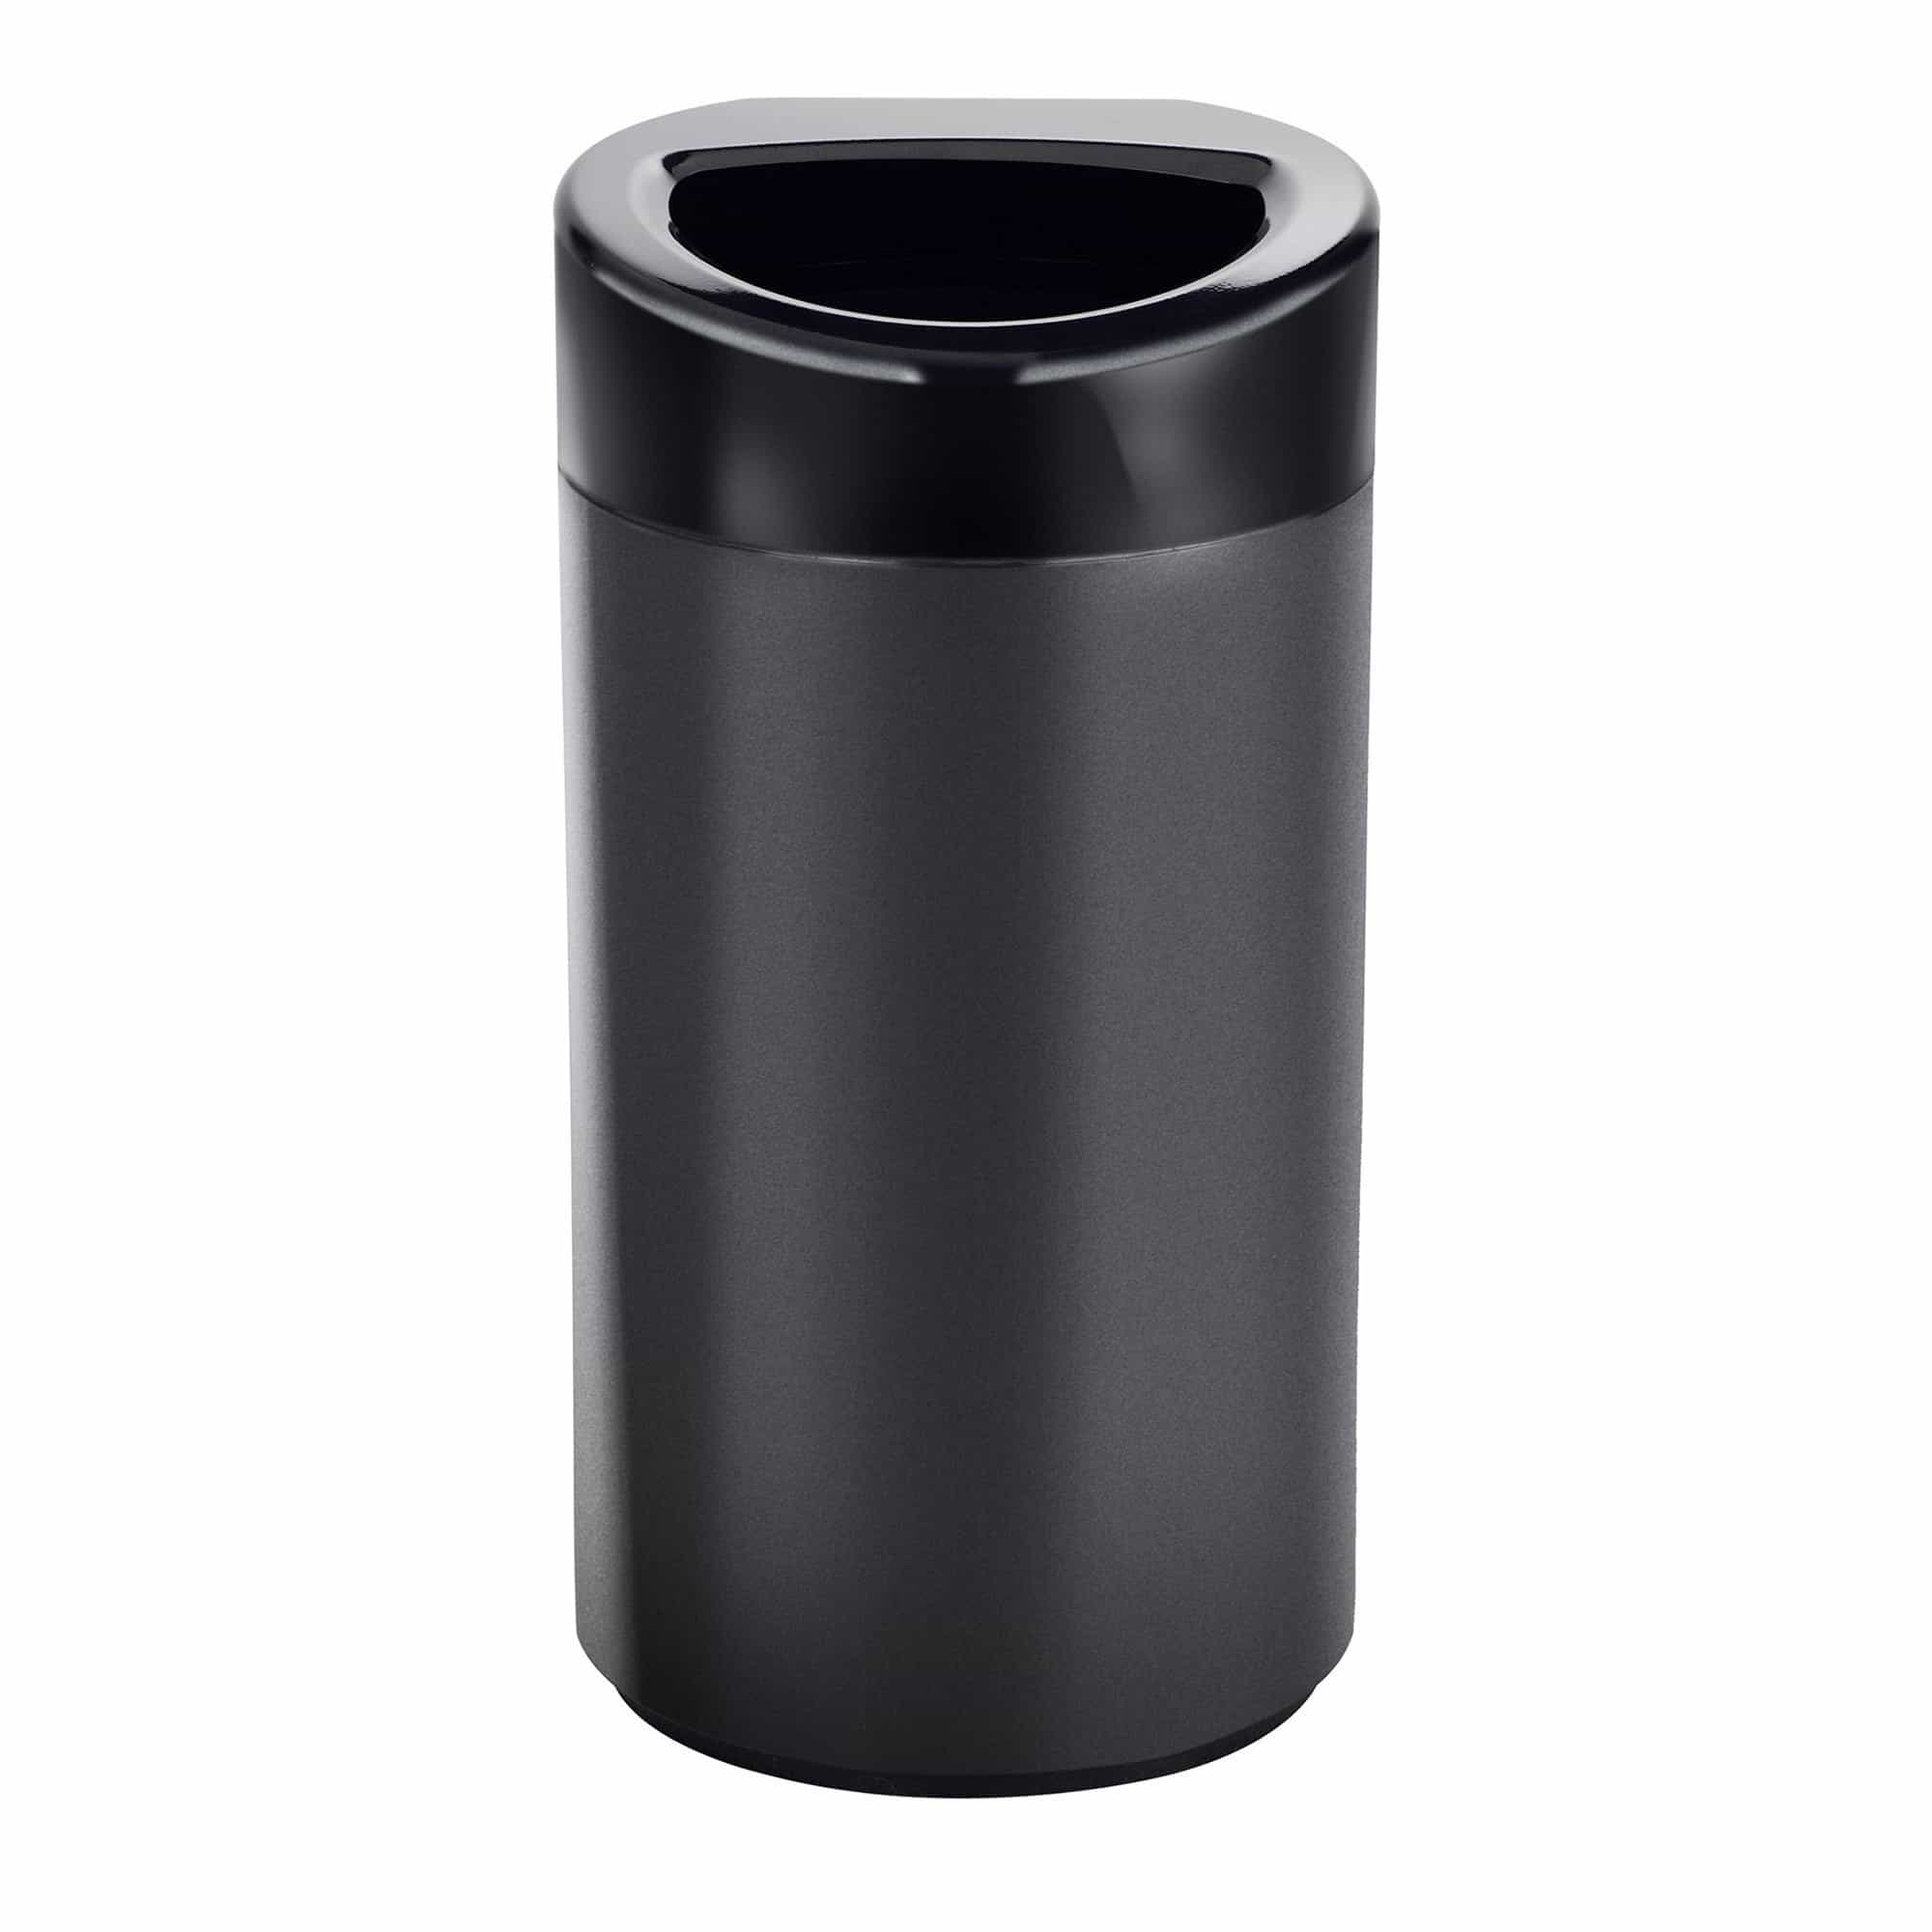 bedinhome - Indoor 14 Gallon Capacity Black Coat Durable Open Top Receptacle Trash Can - Safco - Trash Can